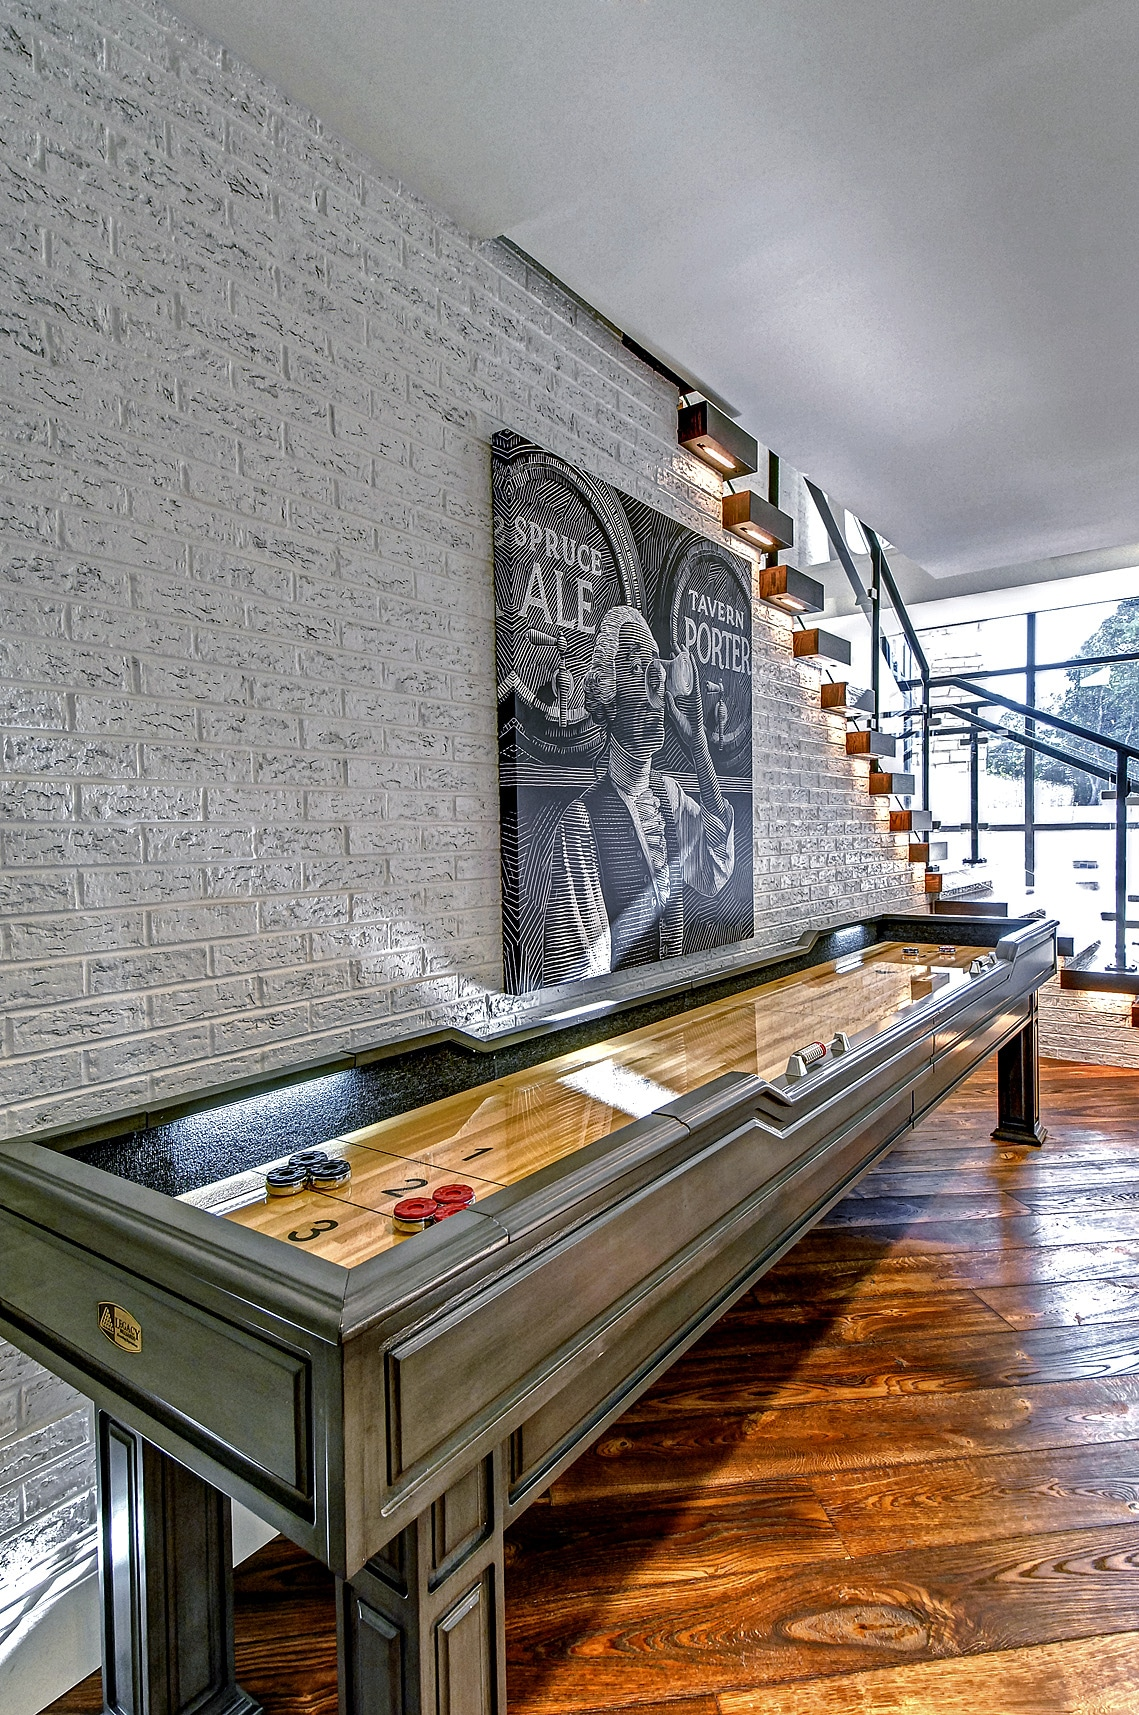 shuffleboard-Maybrook luxury apartments on main line_DSC2213_5_7 web